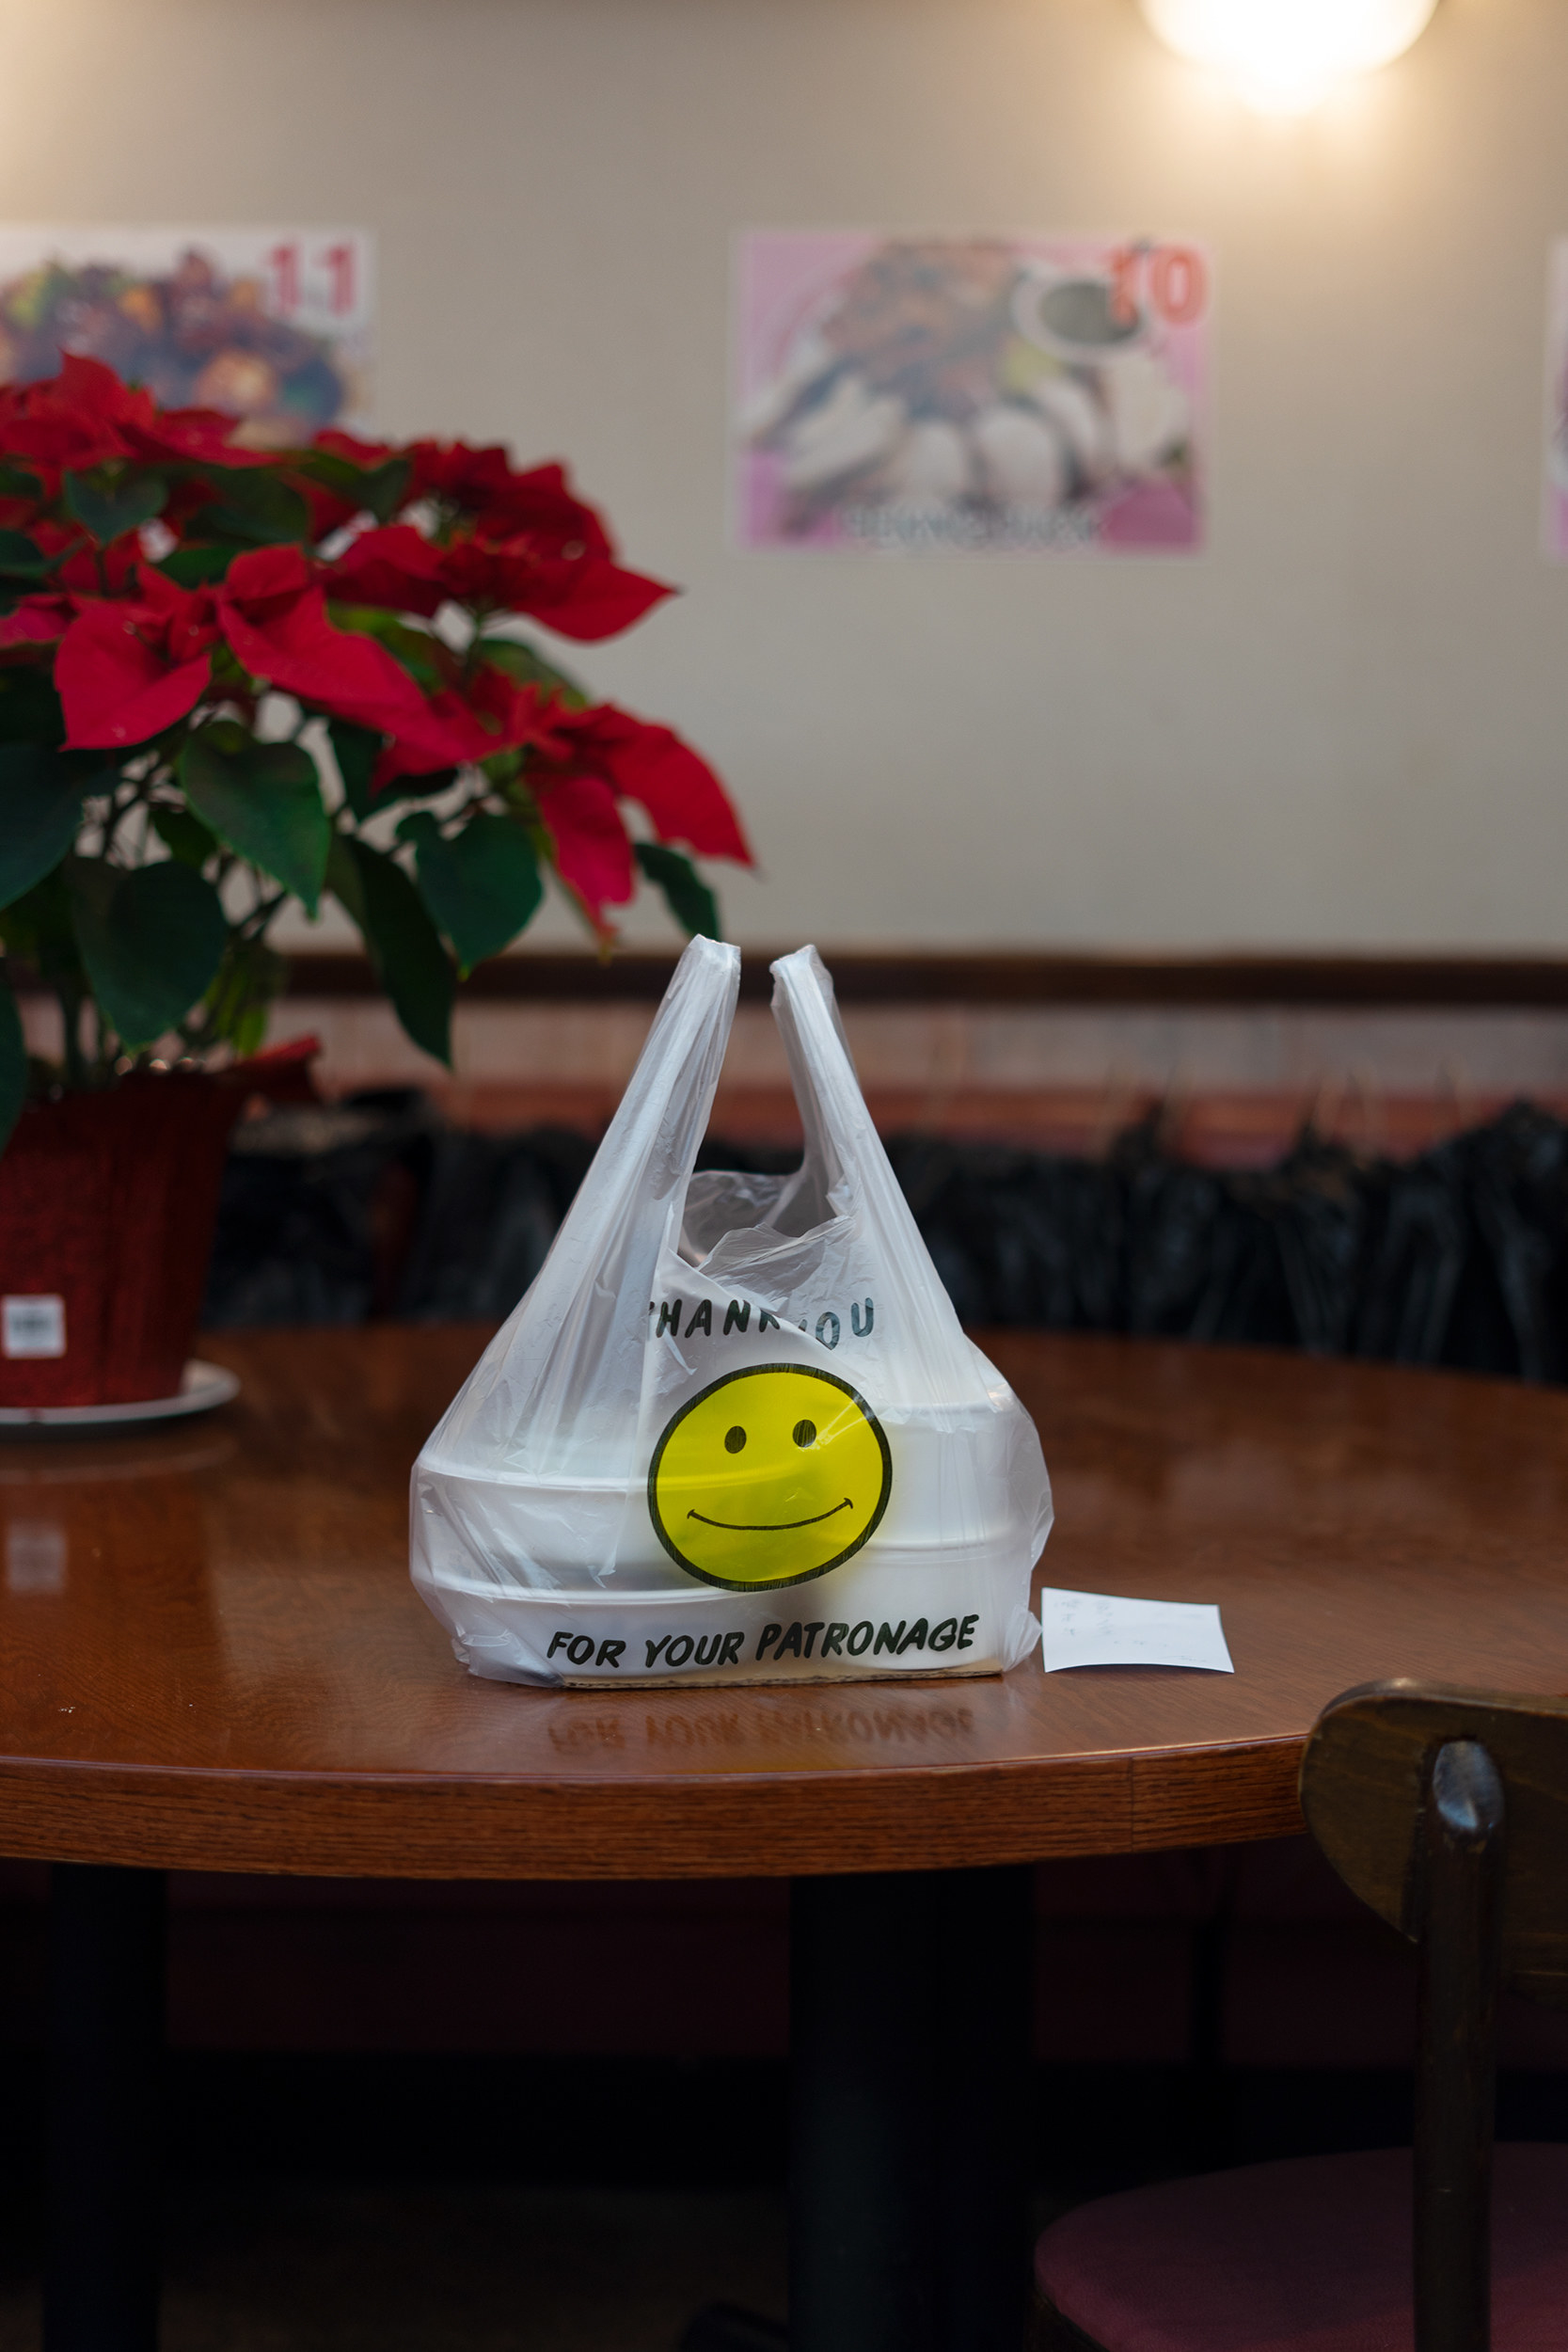 A bag with a smiley face on it at an empty table